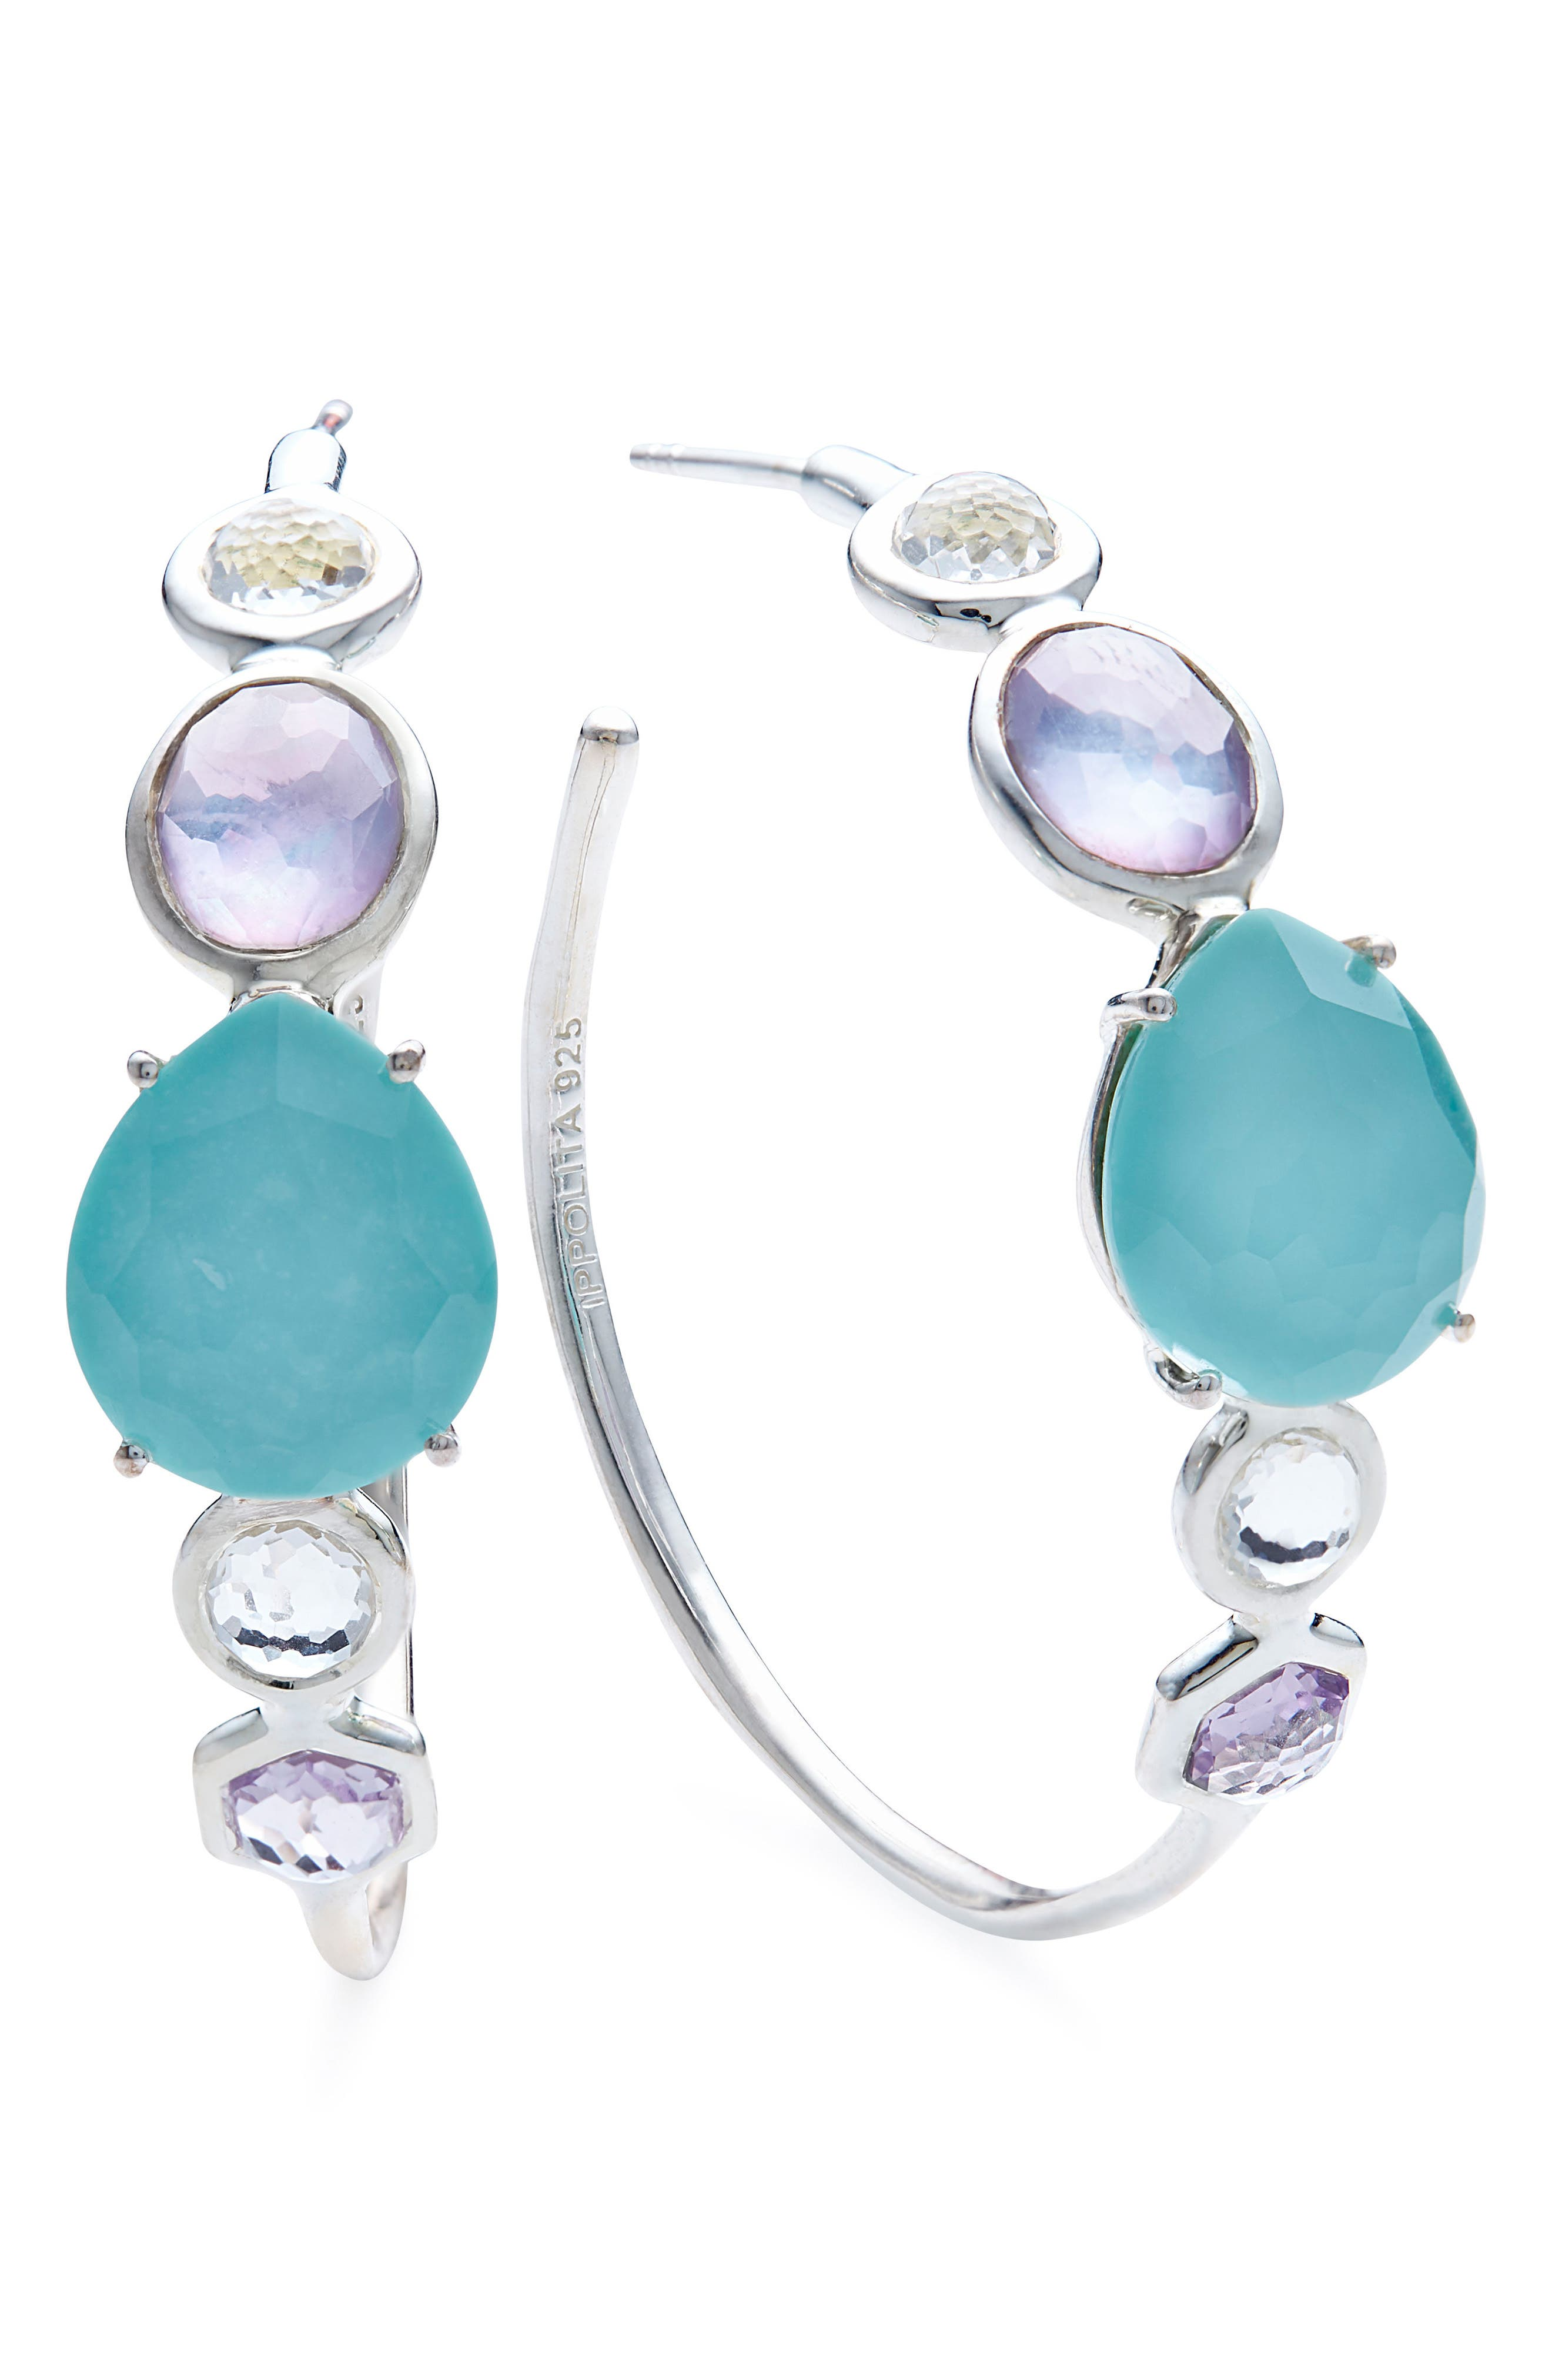 Rock Candy Mixed Stone Bezel Hoop Earrings,                         Main,                         color, LIOLET